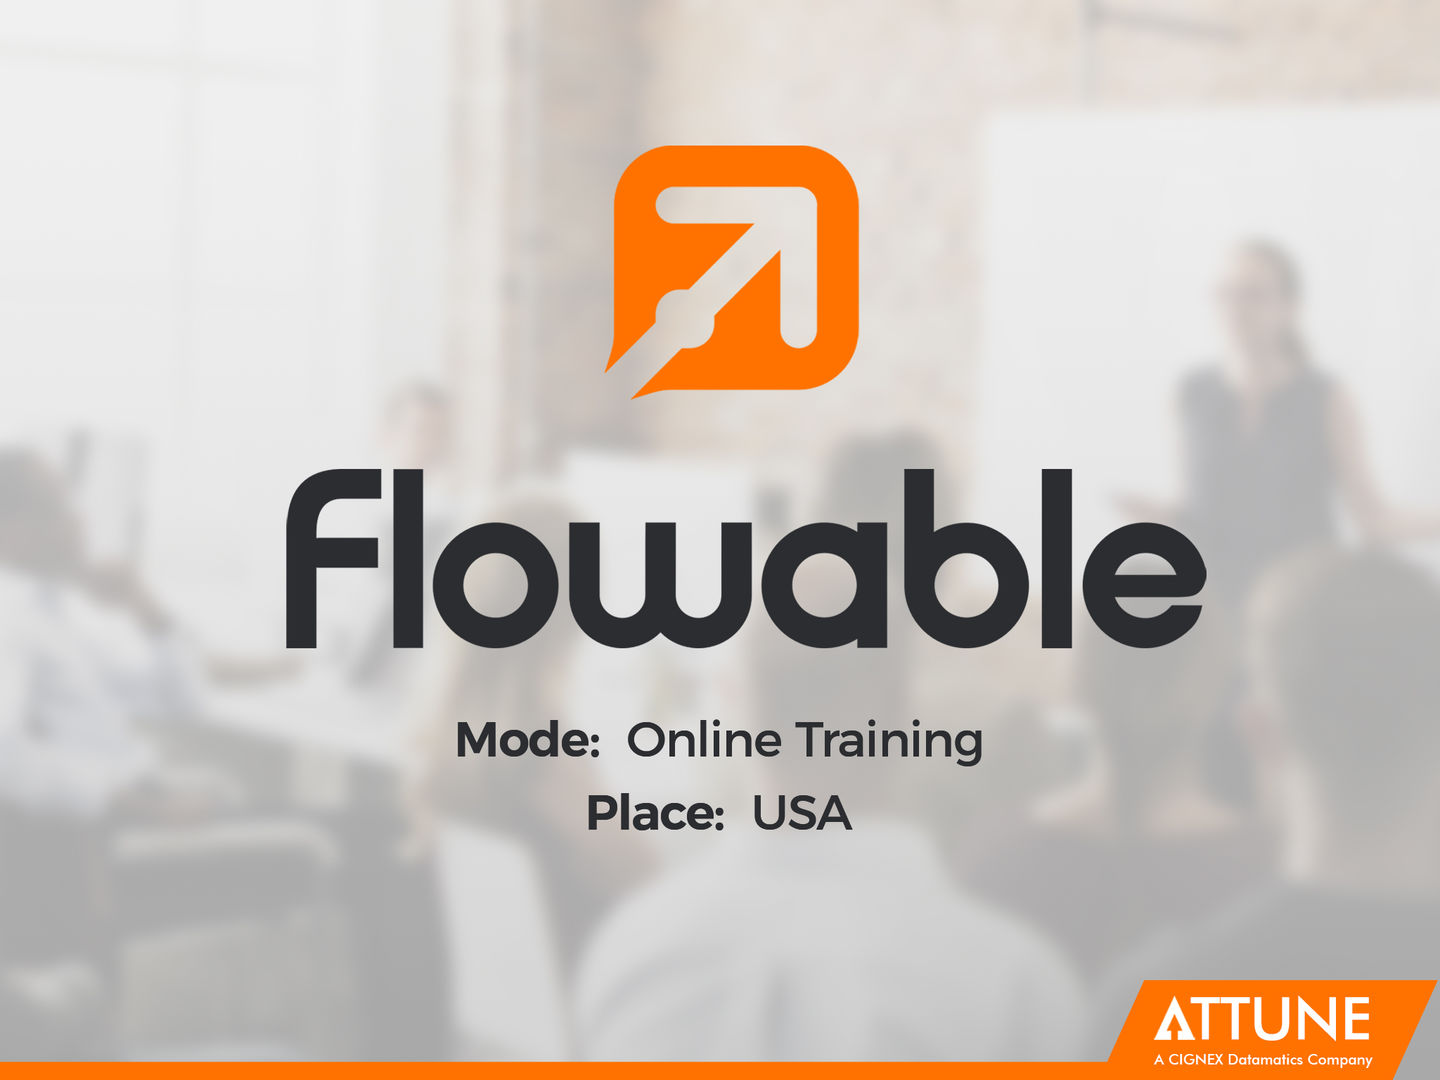 Attune successfully delivered Flowable Training Online to USA